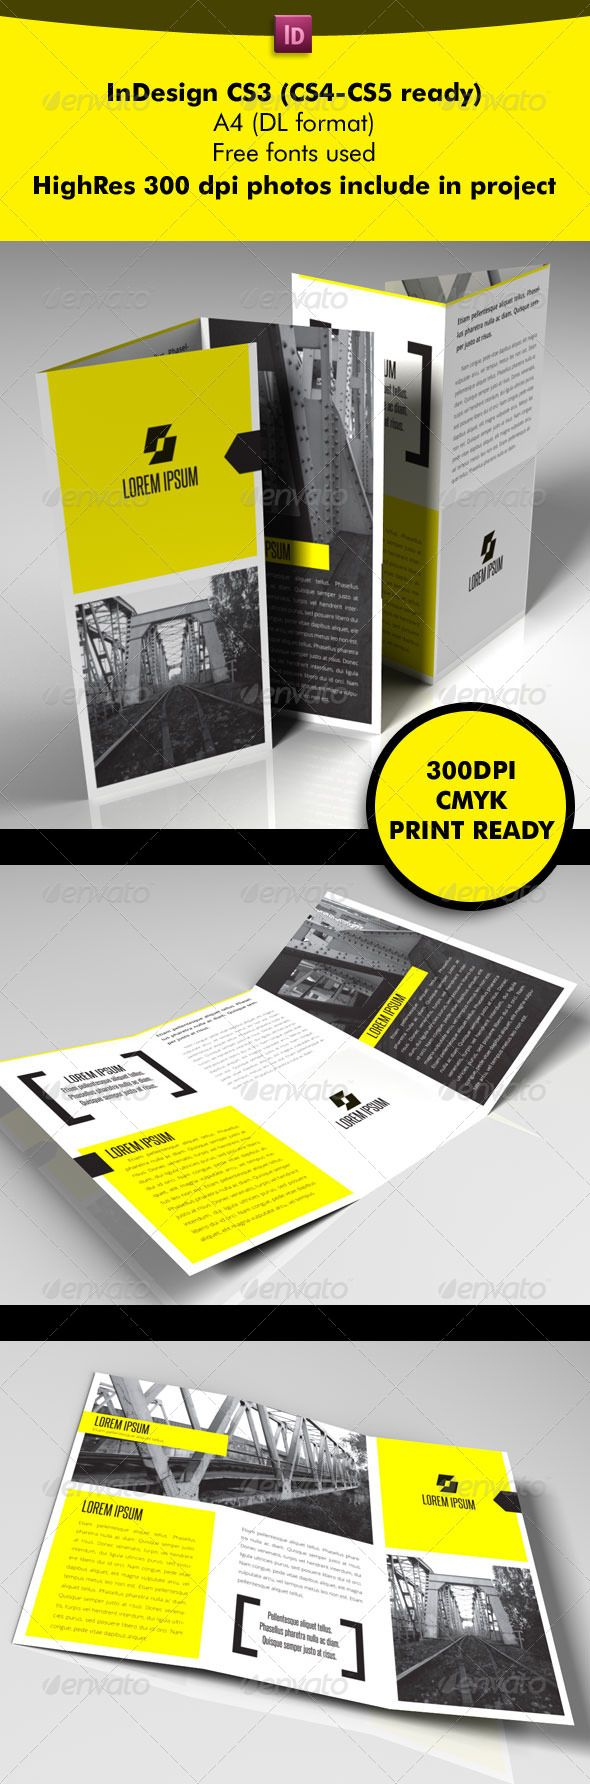 Yellow Square 3-Fold  #GraphicRiver             Details   Fully Editable Indesign file  Letter and A4 files include  300 dpi  CMYK